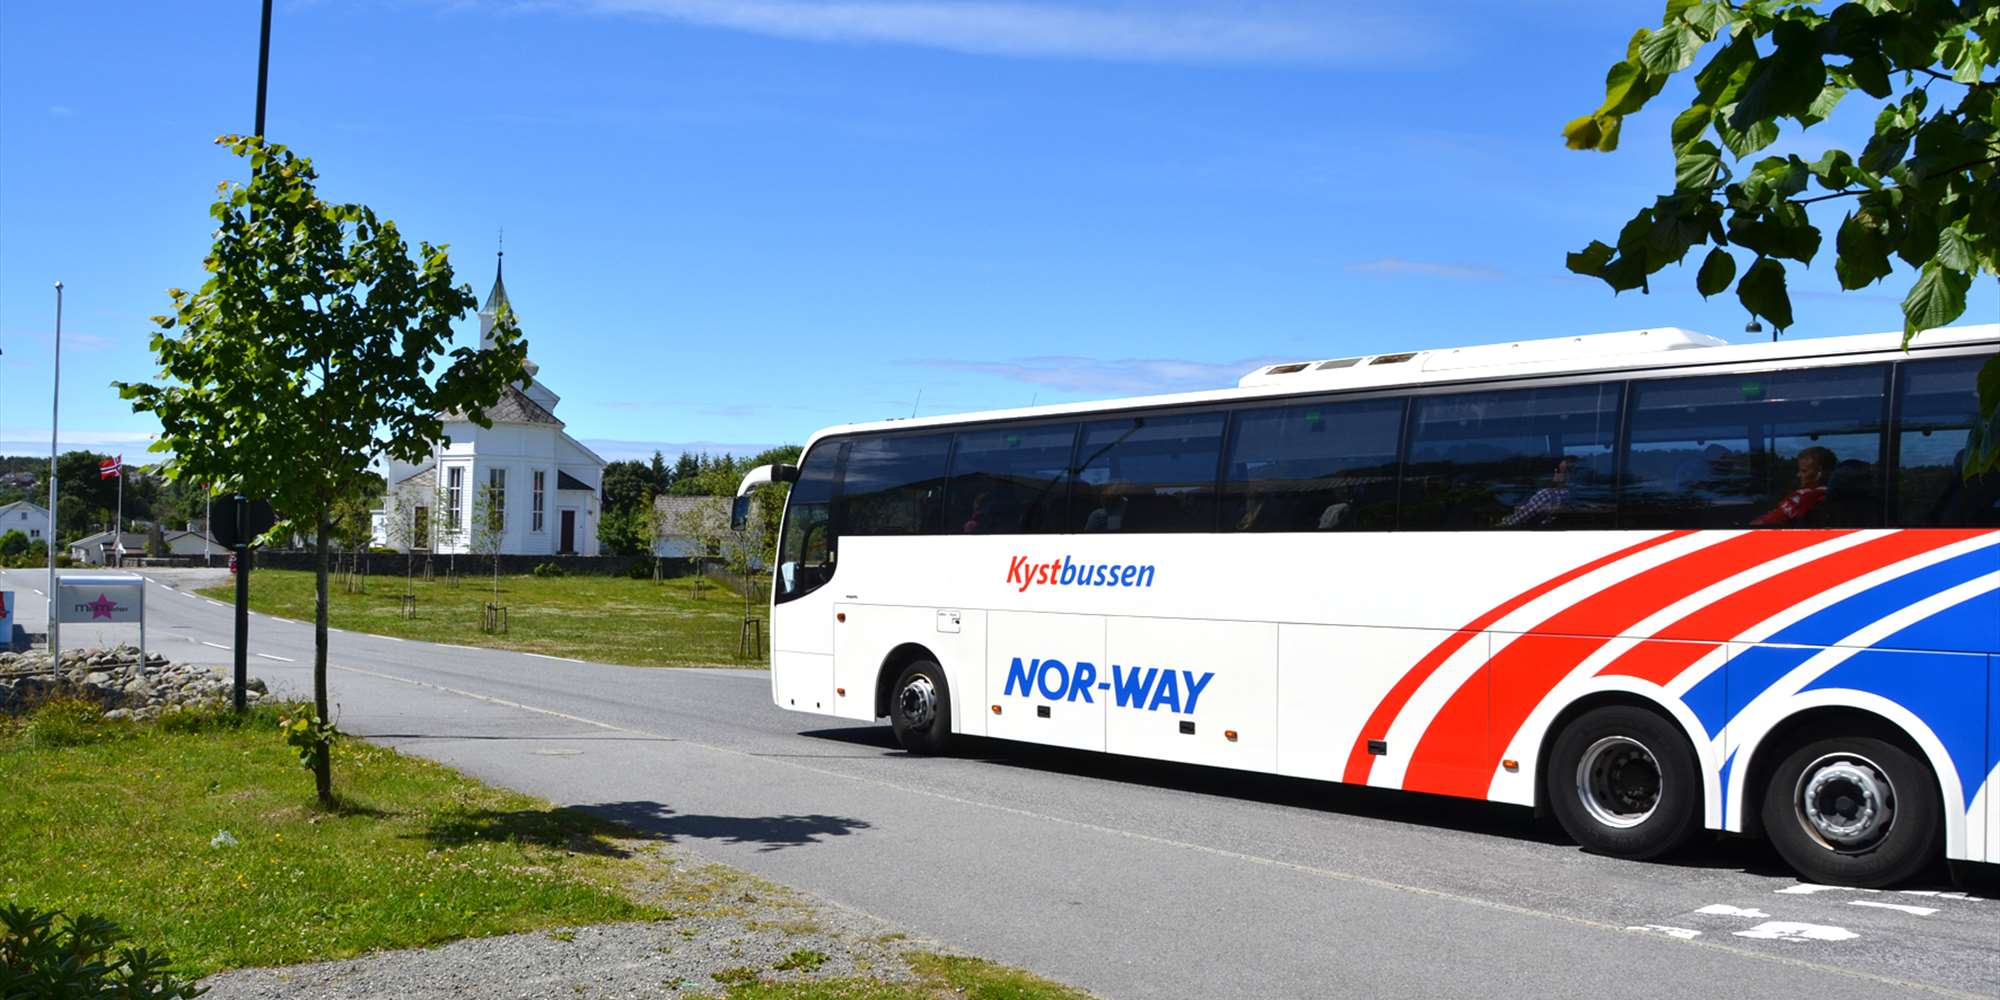 Enjoy the landscape when travelling with Kystbussen.